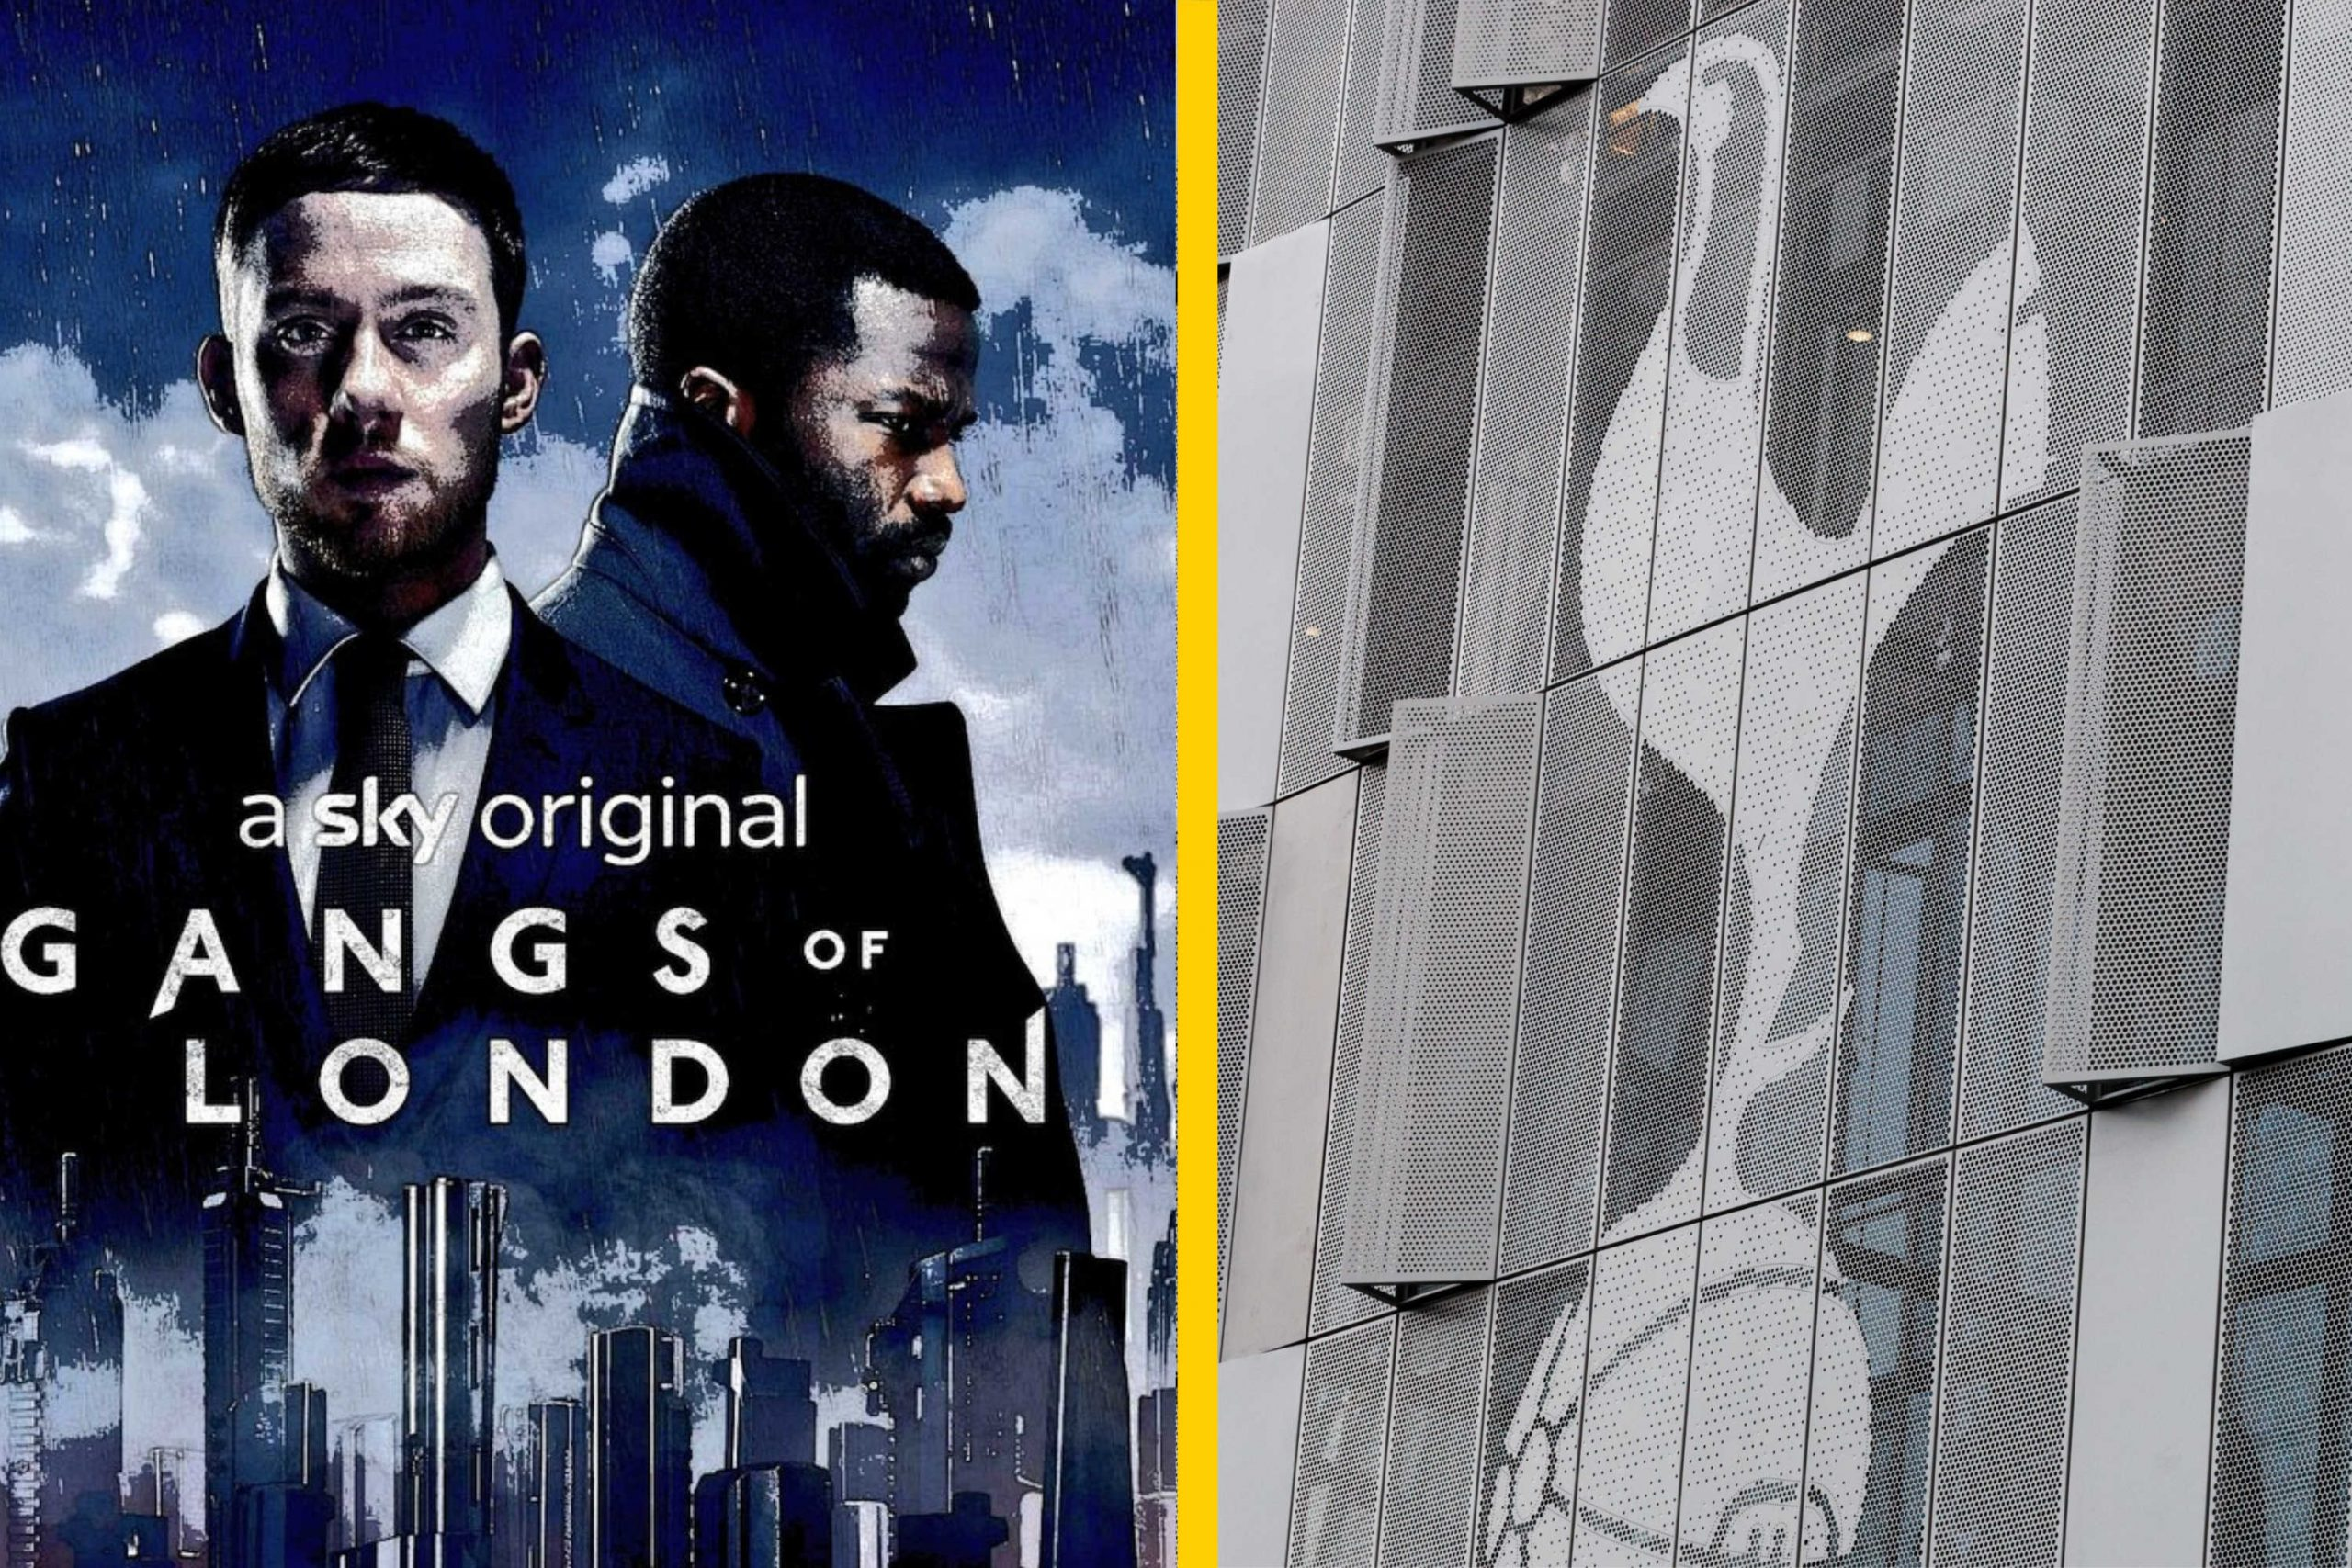 Photo Tottenham Hotspur Stadium Appears On New Mega Action Tv Series Gangs Of London Thick Accent